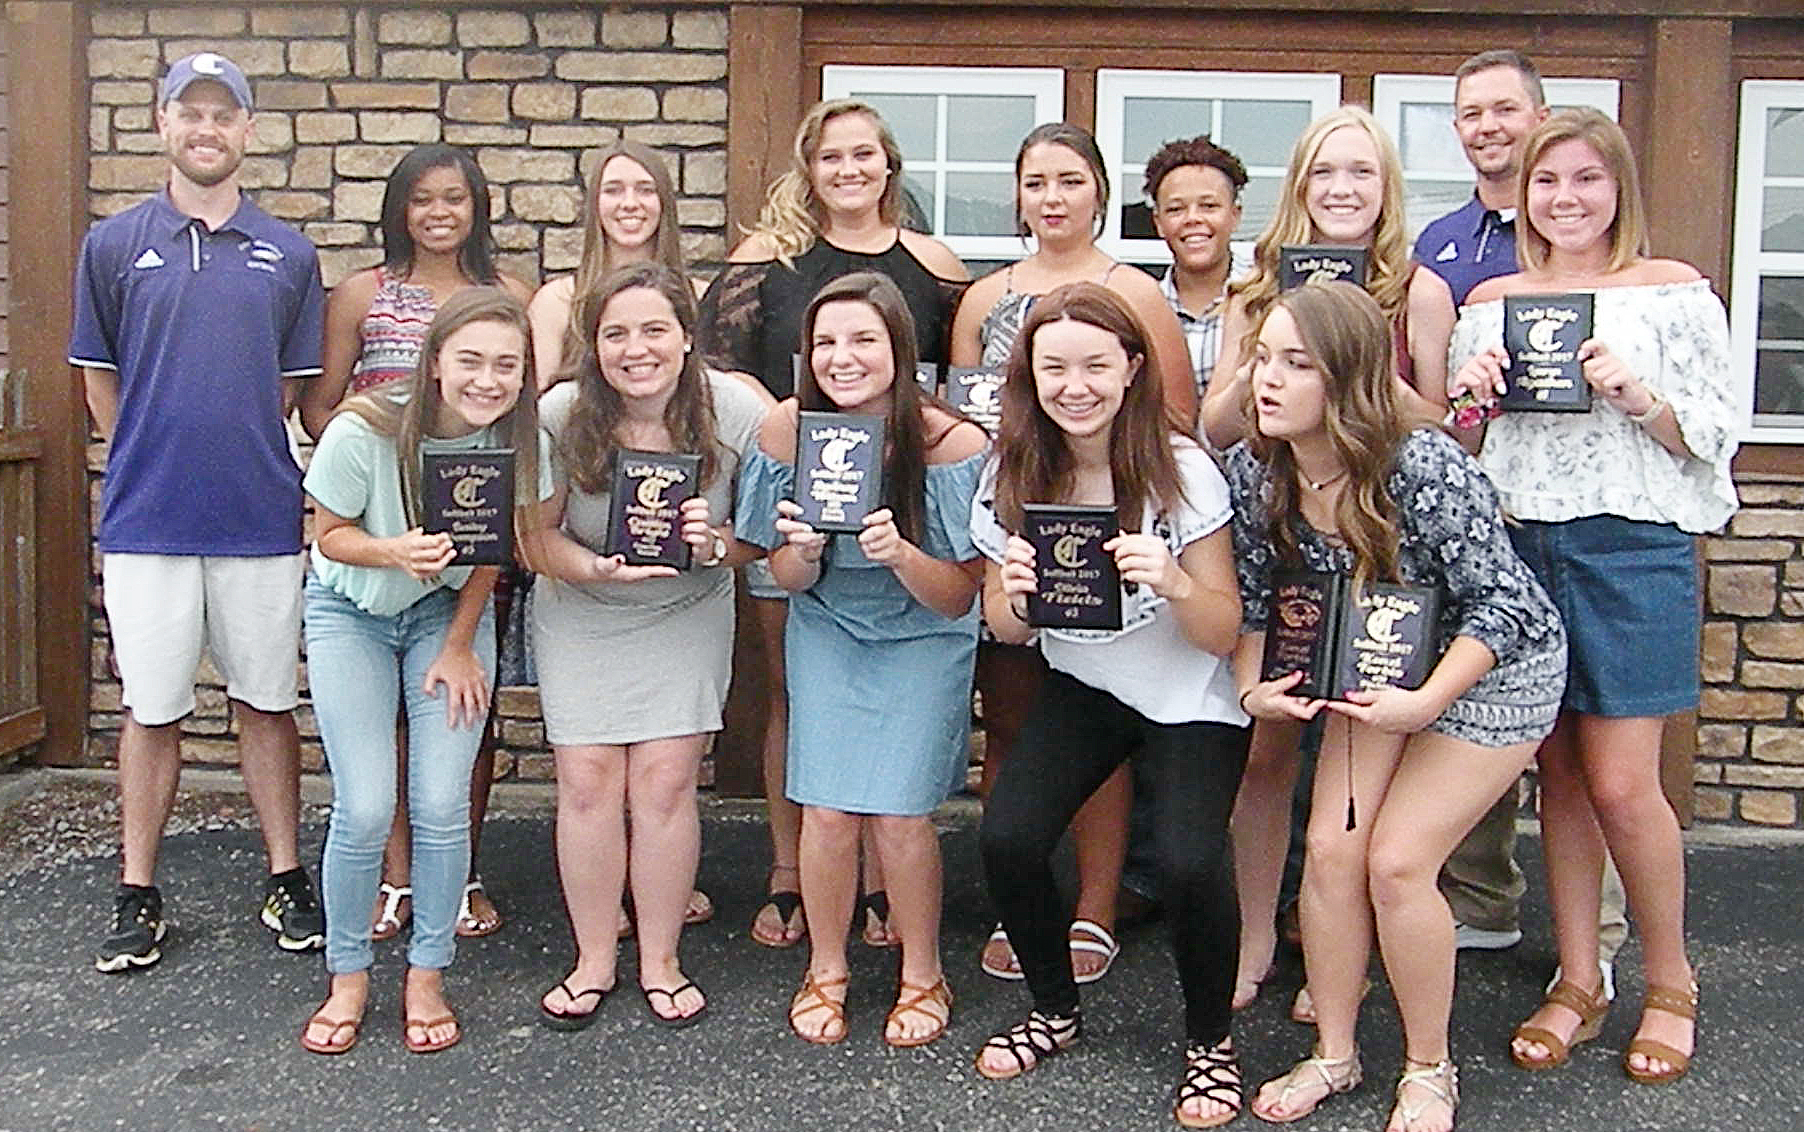 CHS softball players were recently honored at a banquet for their hard work and dedication during this past season. They are, from left, front, sophomore Bailey Thompson, senior Caitlin Bright, sophomore Sydney Wilson, eighth-grader Olivia Fields and freshman Kenzi Forbis. Back, assistant coach Matthew Schmuck, senior Vonnea Smith, freshman Abi Wiedewitsch, Brenna Wethington and Kailey Morris, who graduated in May, junior Dee Simpson, freshman Catlyn Clausen, head coach Weston Jones and sophomore Lauryn Agathen. Absent from the photo are sophomore Shallan Philpott and seniors Kayla Young, Kiyah Barnett and Nena Barnett.